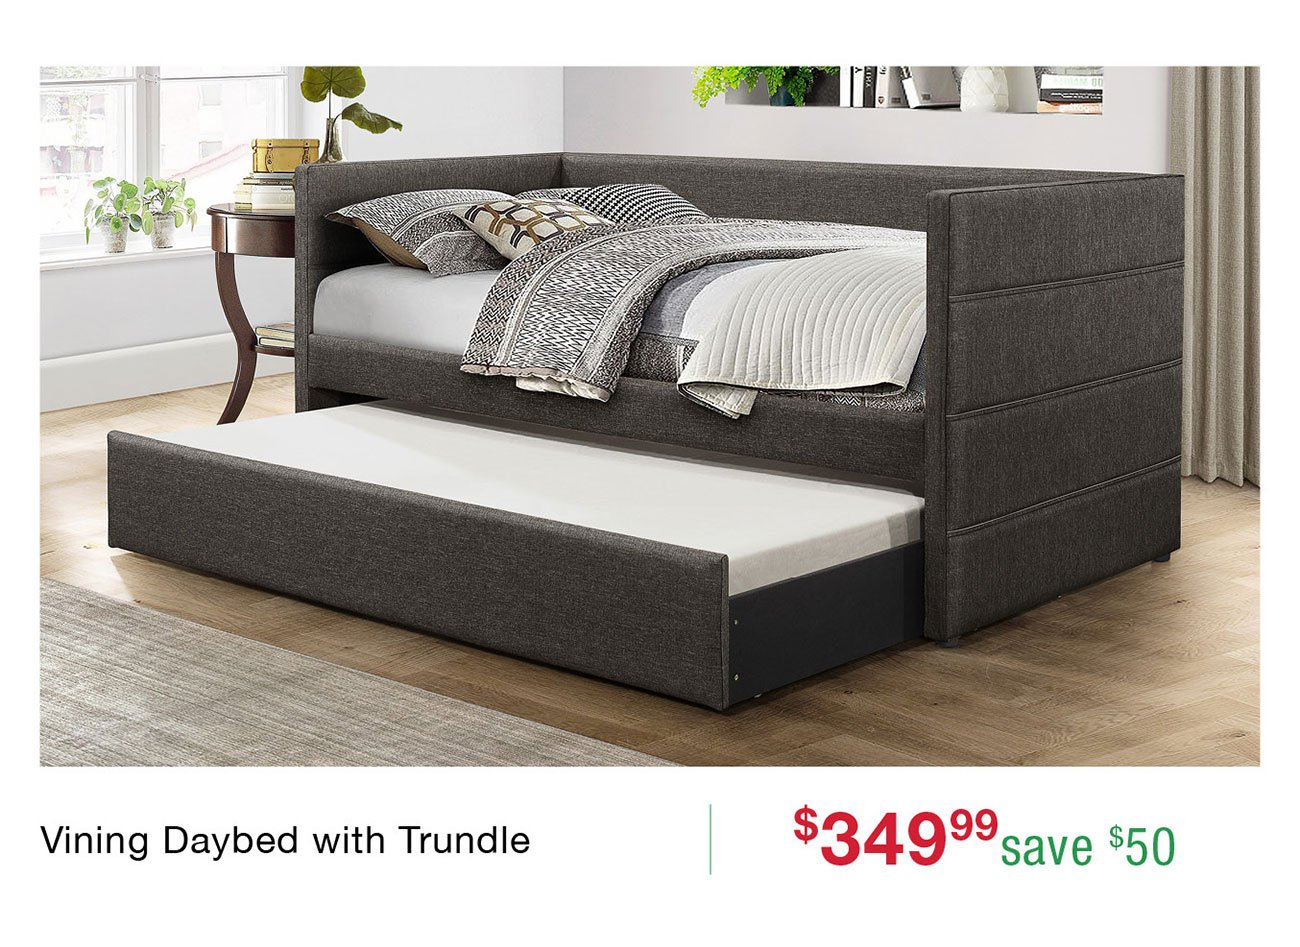 Vining-daybed-with-trundle